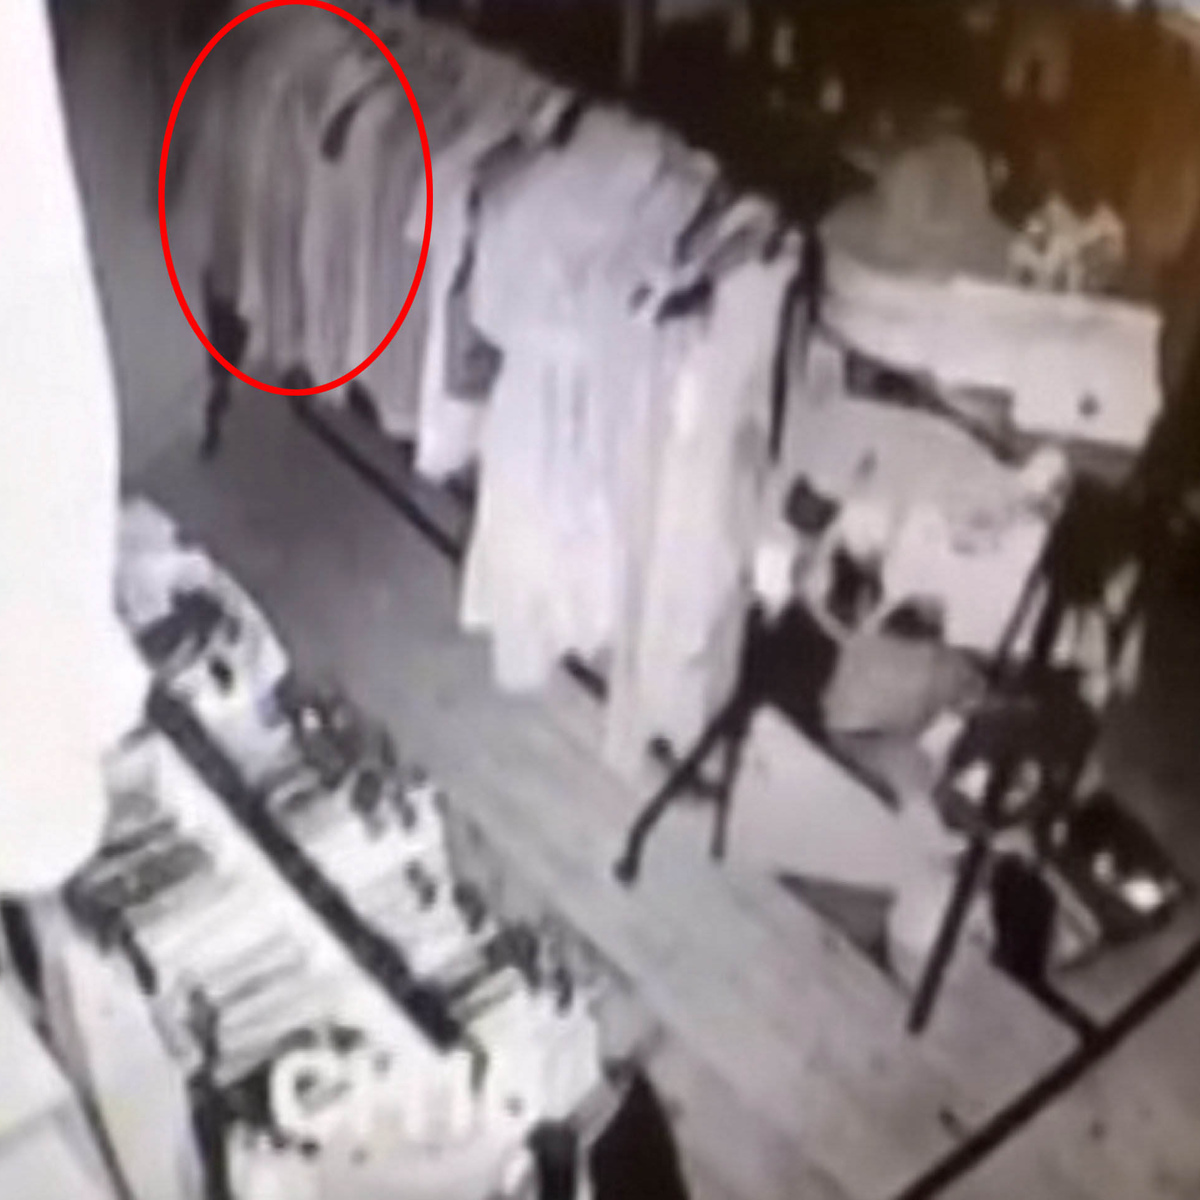 Creepy As F*ck CCTV Footage Shows Ghost Wandering Around Vintage Store SWNS SHOP GHOST 04A